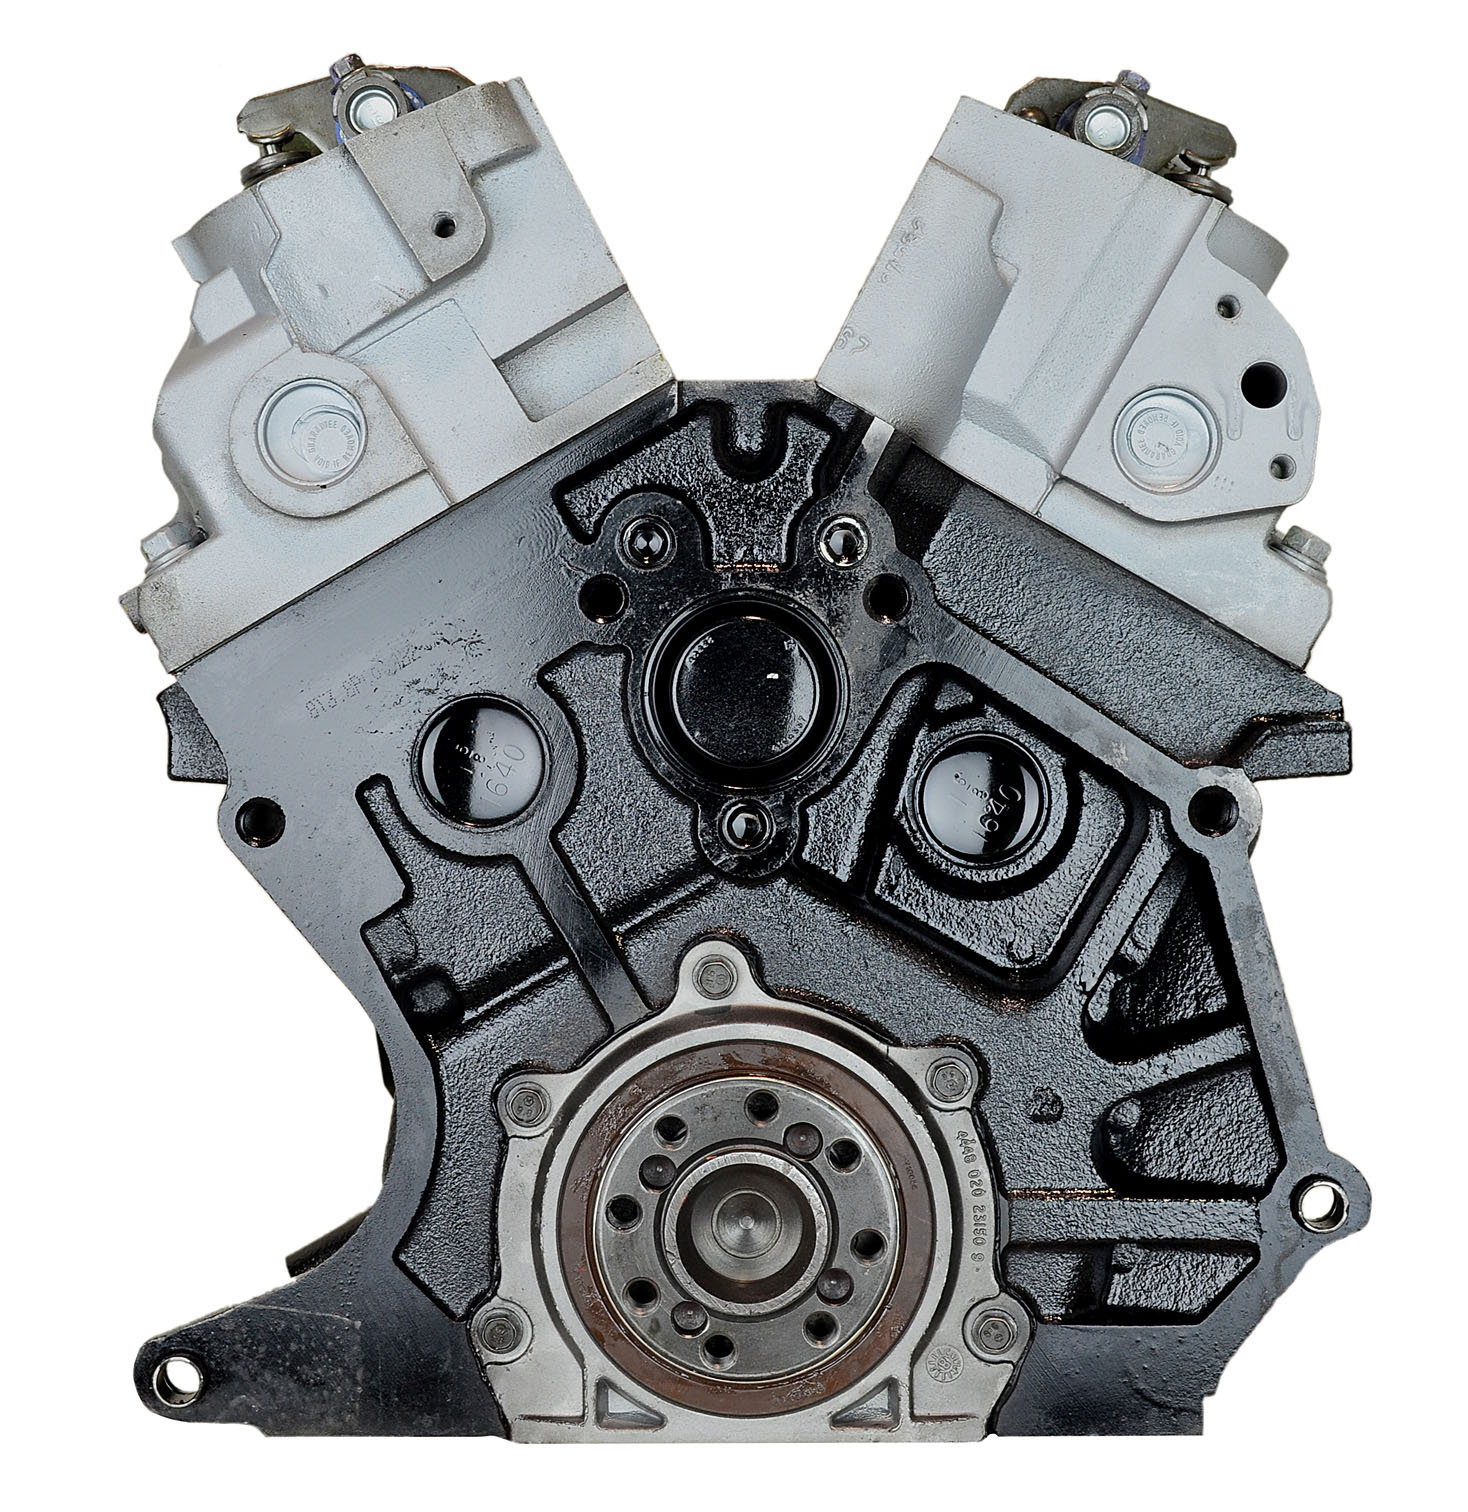 2007-2008 Chrysler Pacifica 3.8 V6 engine 24 Valve ...